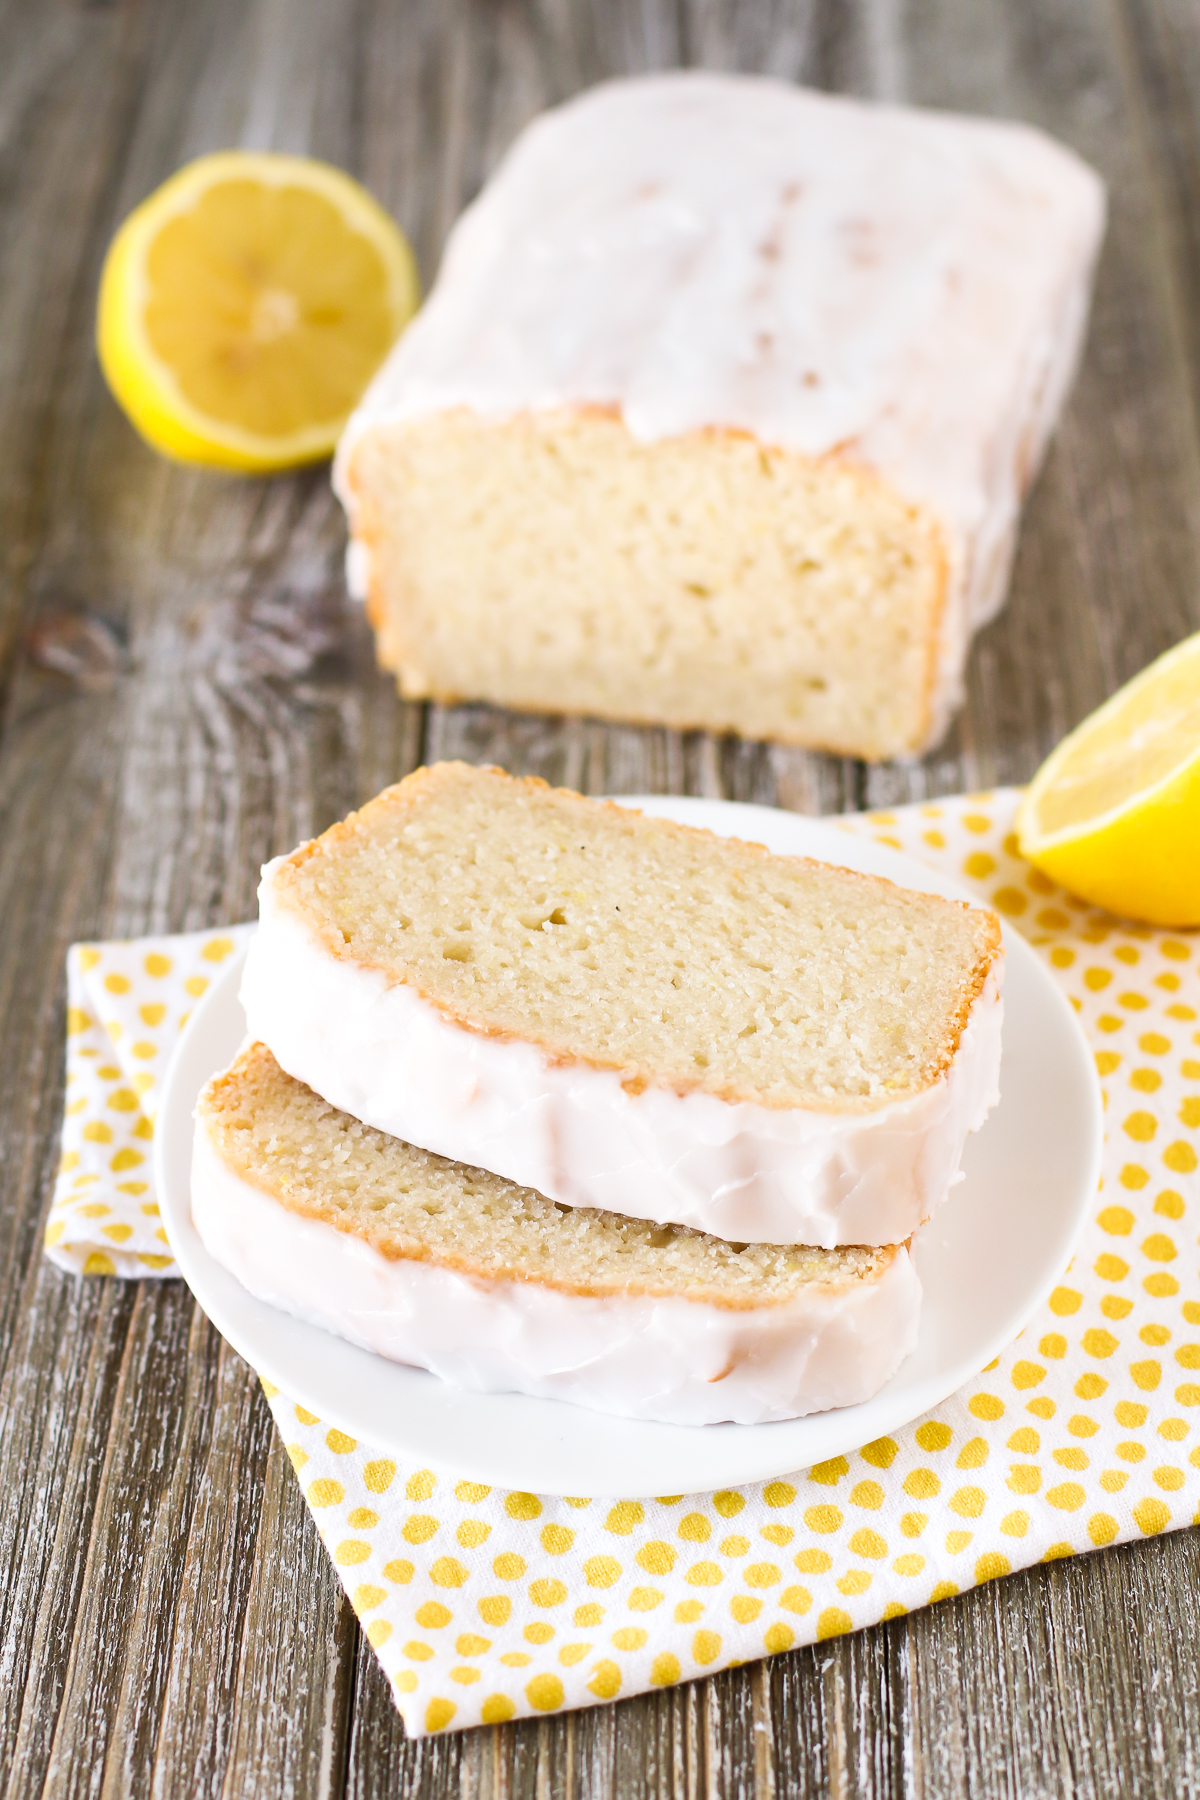 Gluten Free Vegan Glazed Lemon Pound Cake. Moist lemon cake with a simple glaze. You will for sure go back for a second slice!